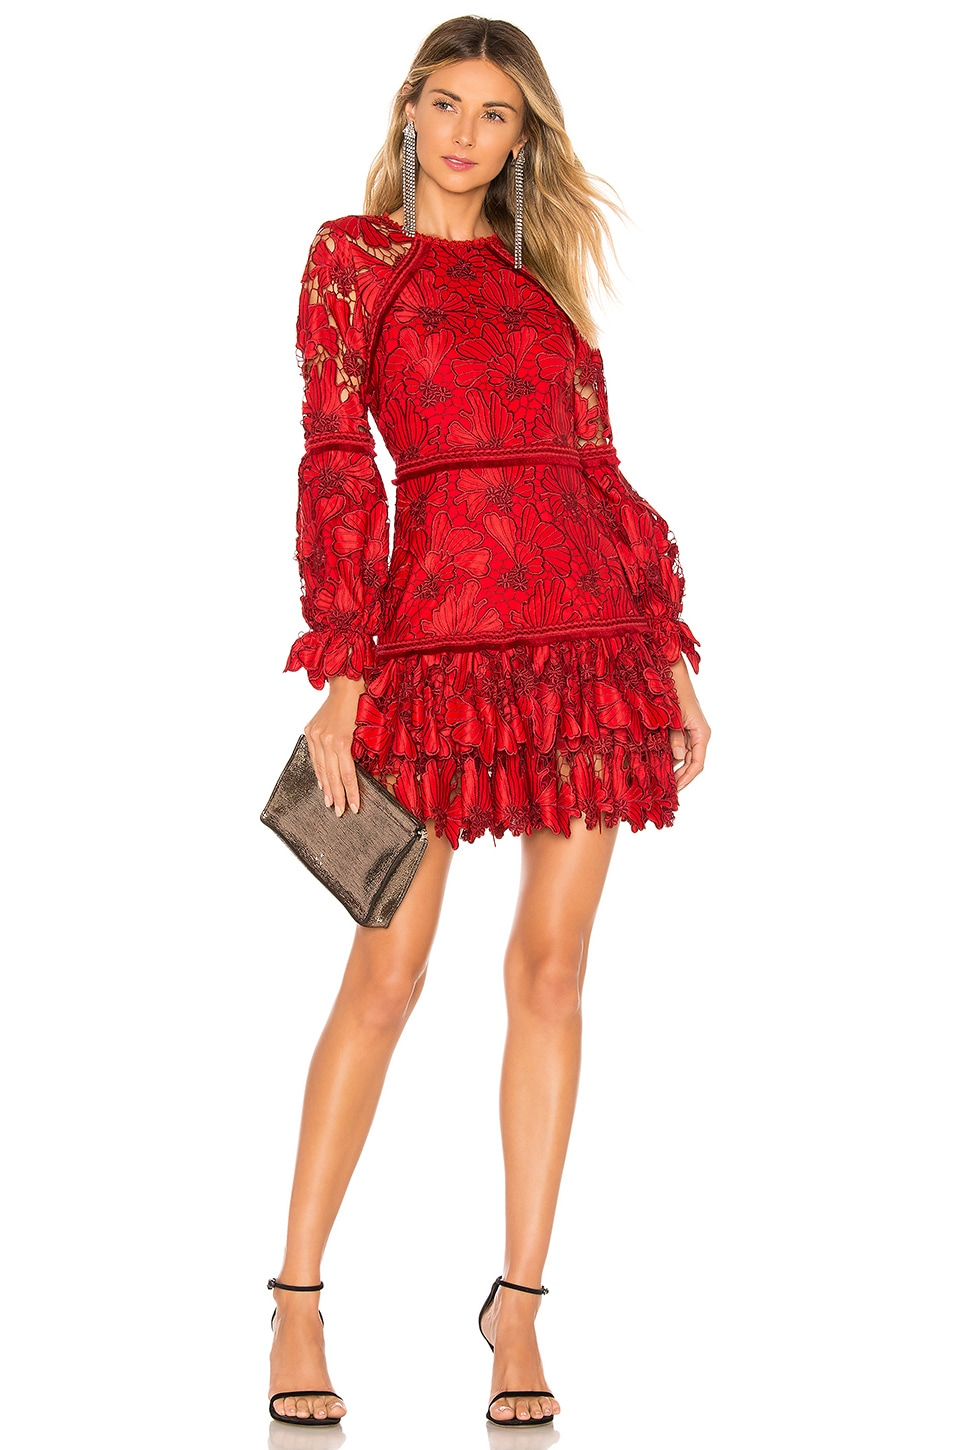 b4d8a8f3 Alexis Fransisca Lace Dress in Scarlet Lace | REVOLVE